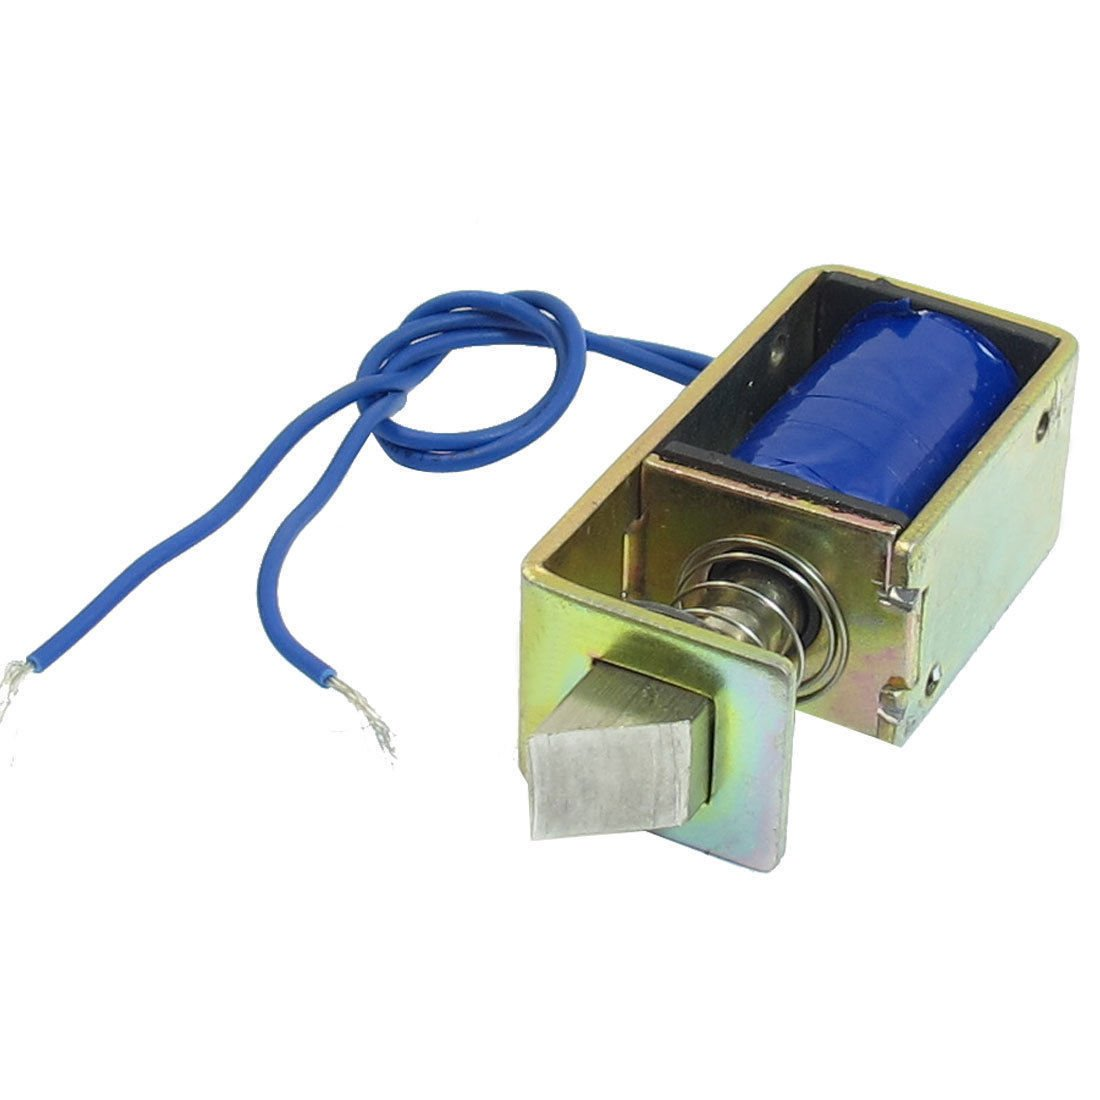 DC 12V 1A 10mm Stroke 15N Force Open Frame Type Solenoid for Electric Door Lock